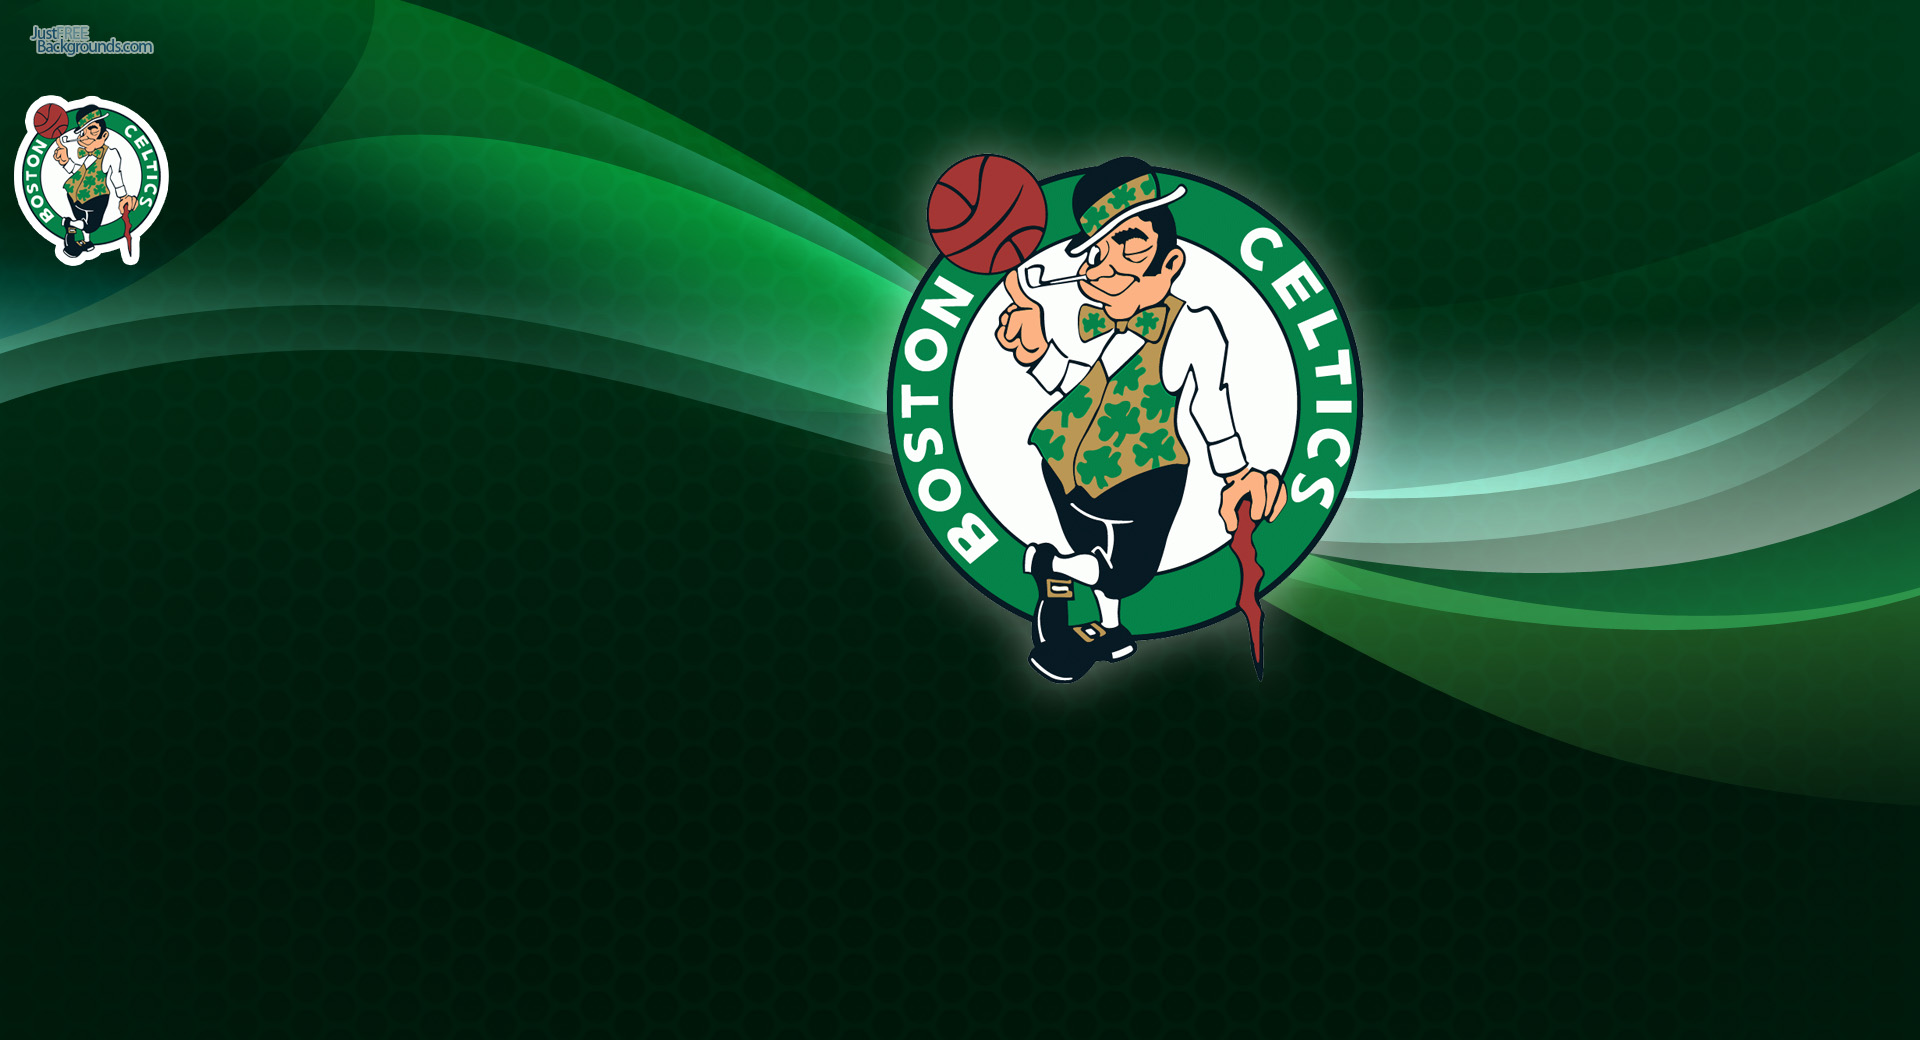 Sports Wallpapers Boston Celtics Wallpapers Page 10090 1920x1040 1920x1040